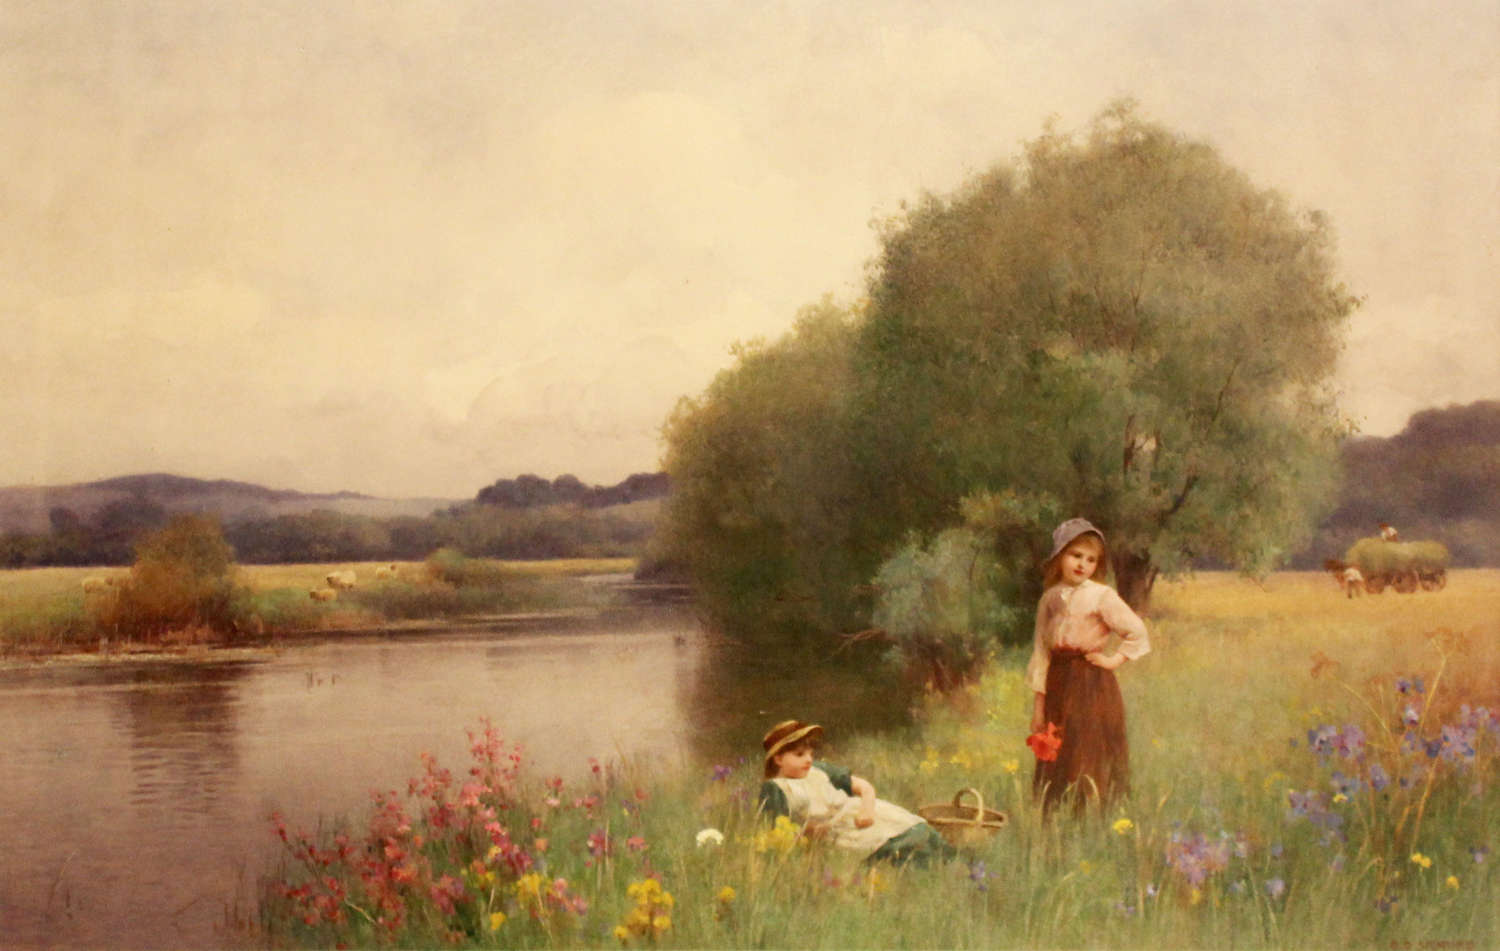 Benjamin D. Sigmund (1880-1903) Watercolour of girls in a river scene